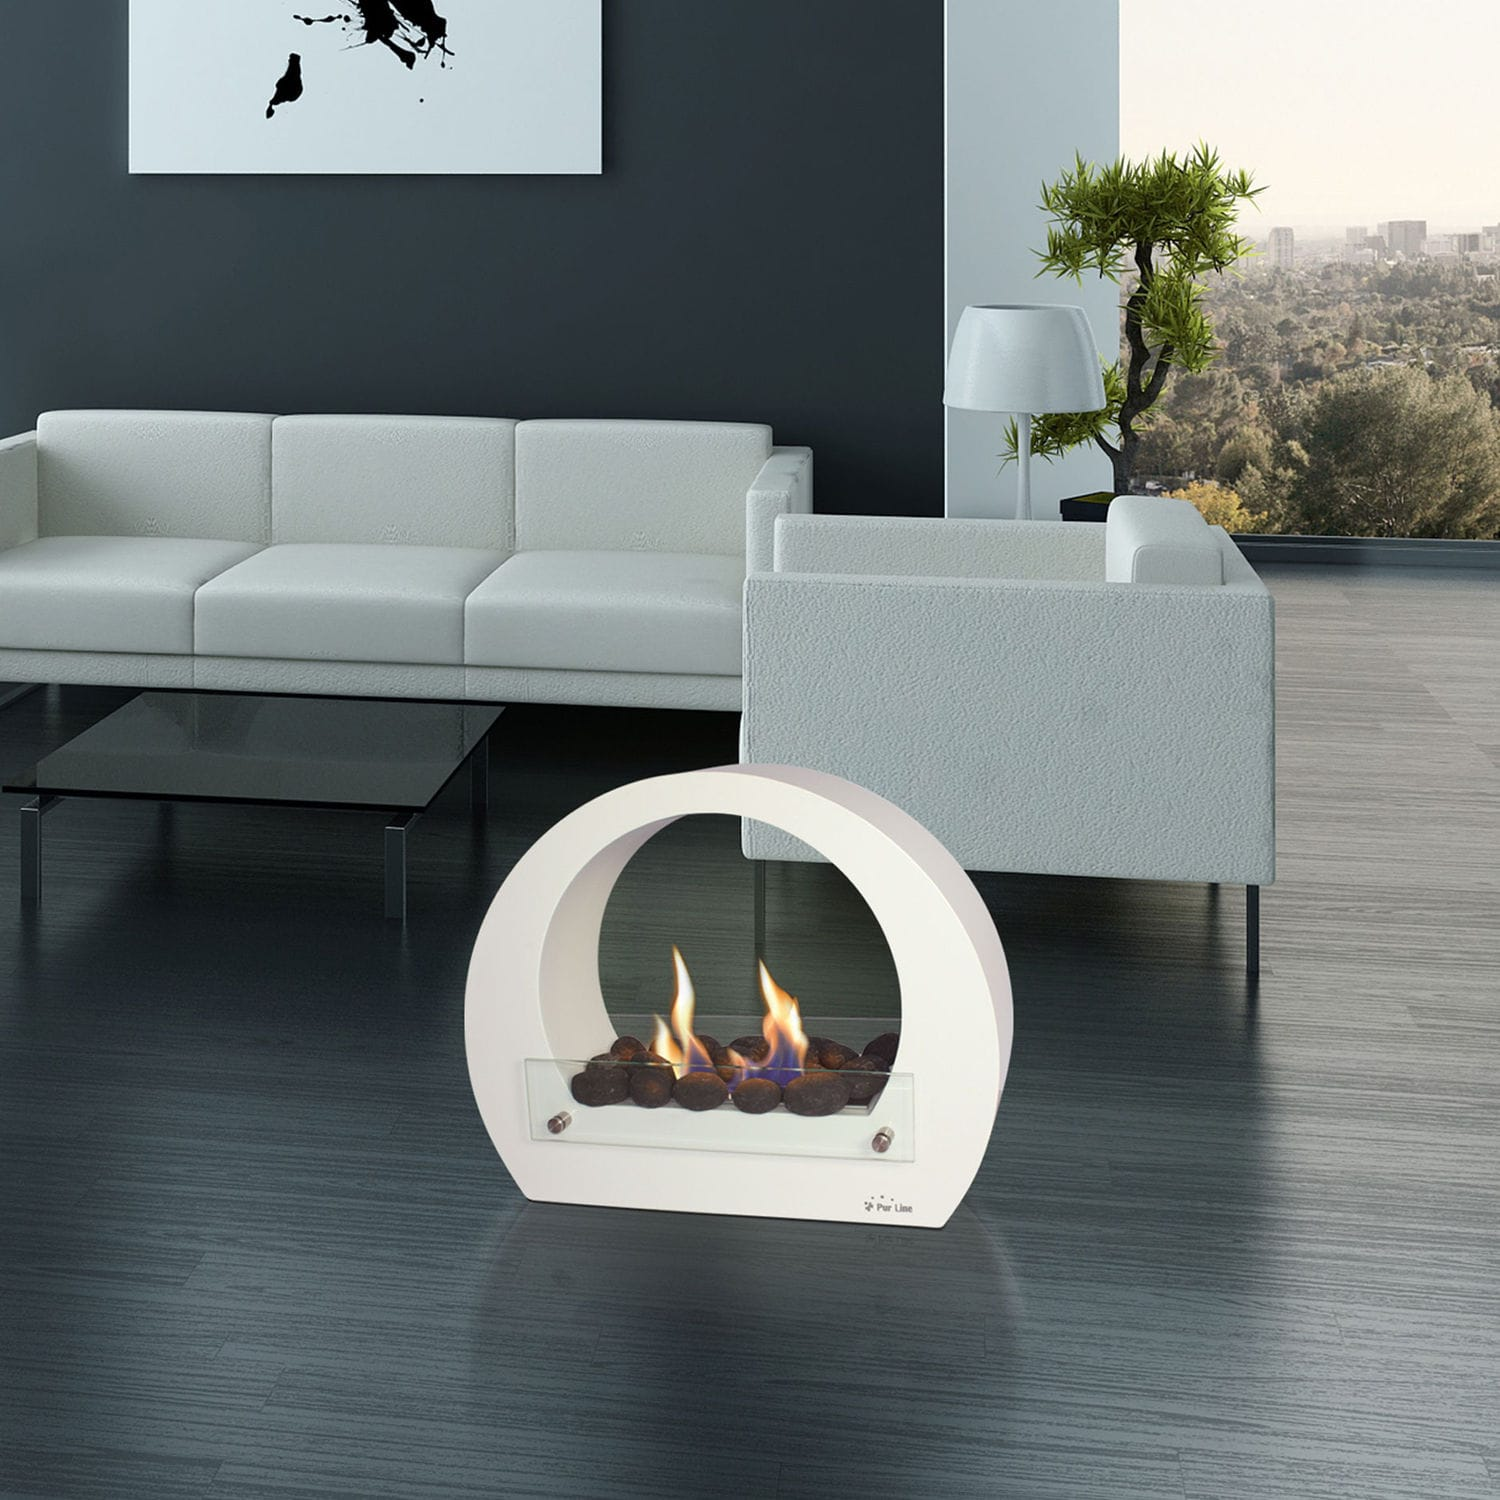 now cube whi ii new fireplaces bio blog of fireplace our burners ethanol small tabletop floor units in big and stock models p